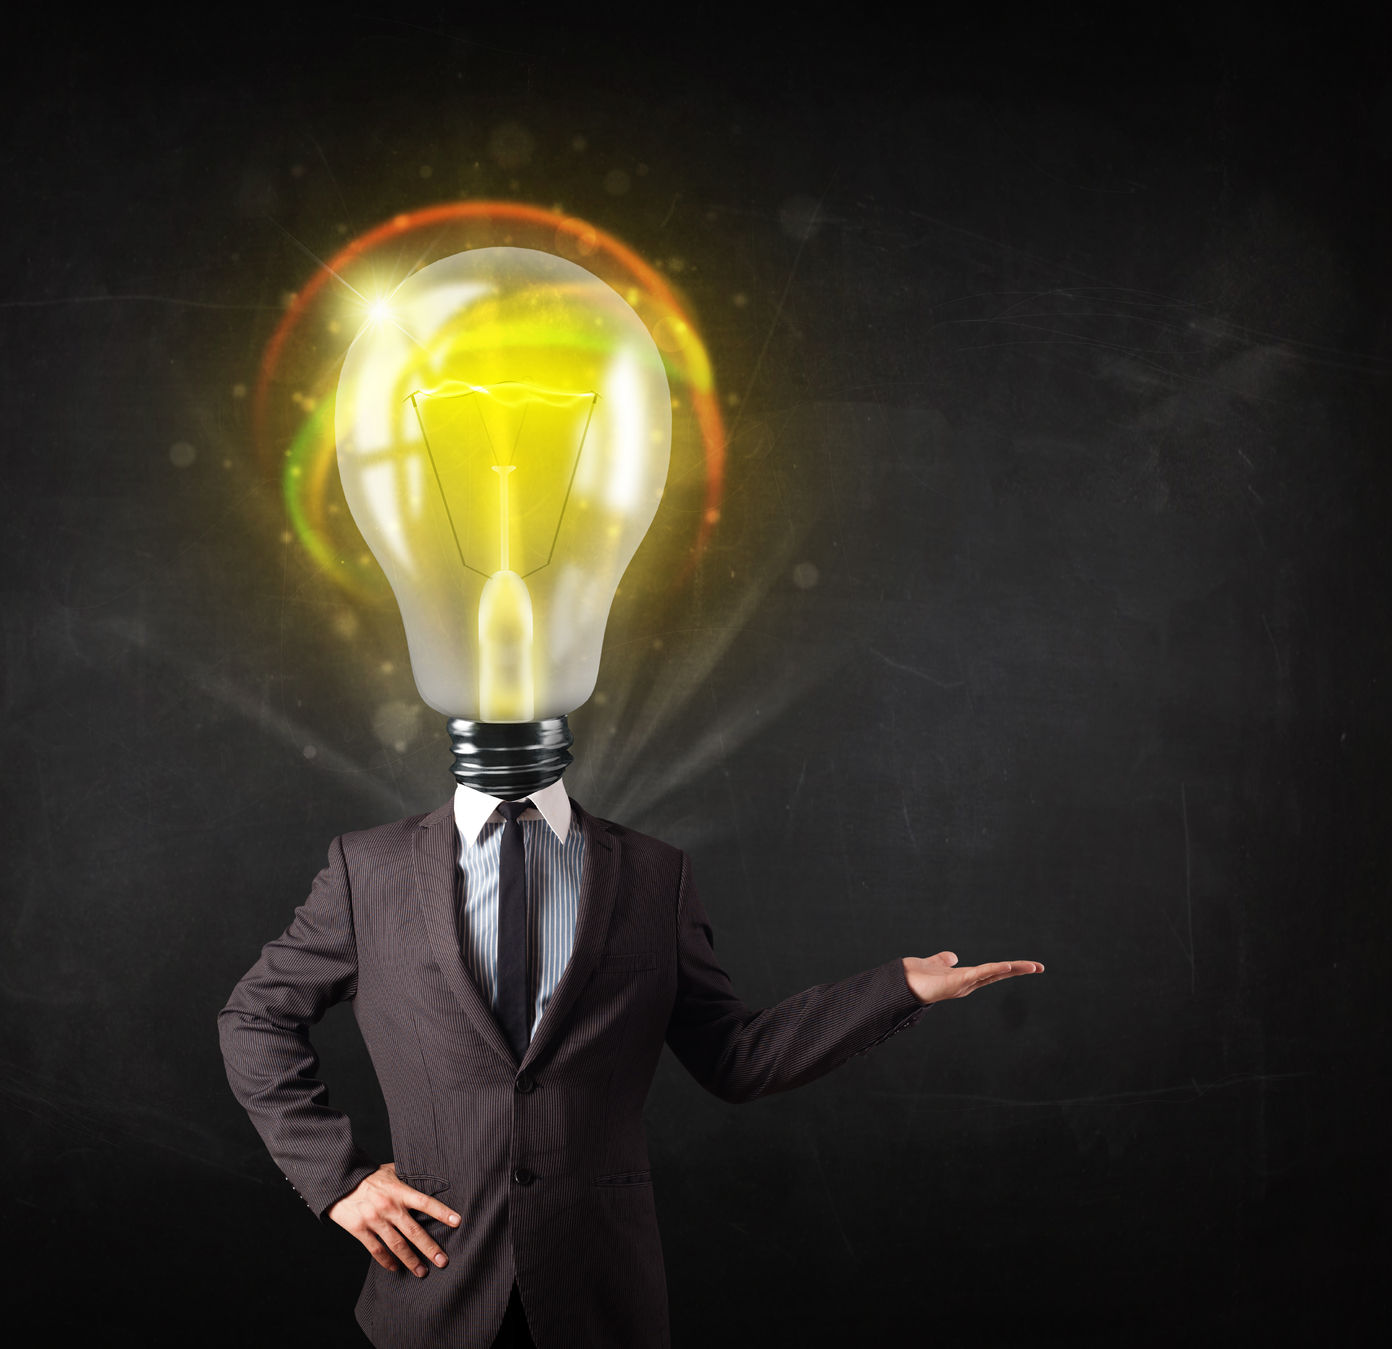 lightbulb-head-businessman